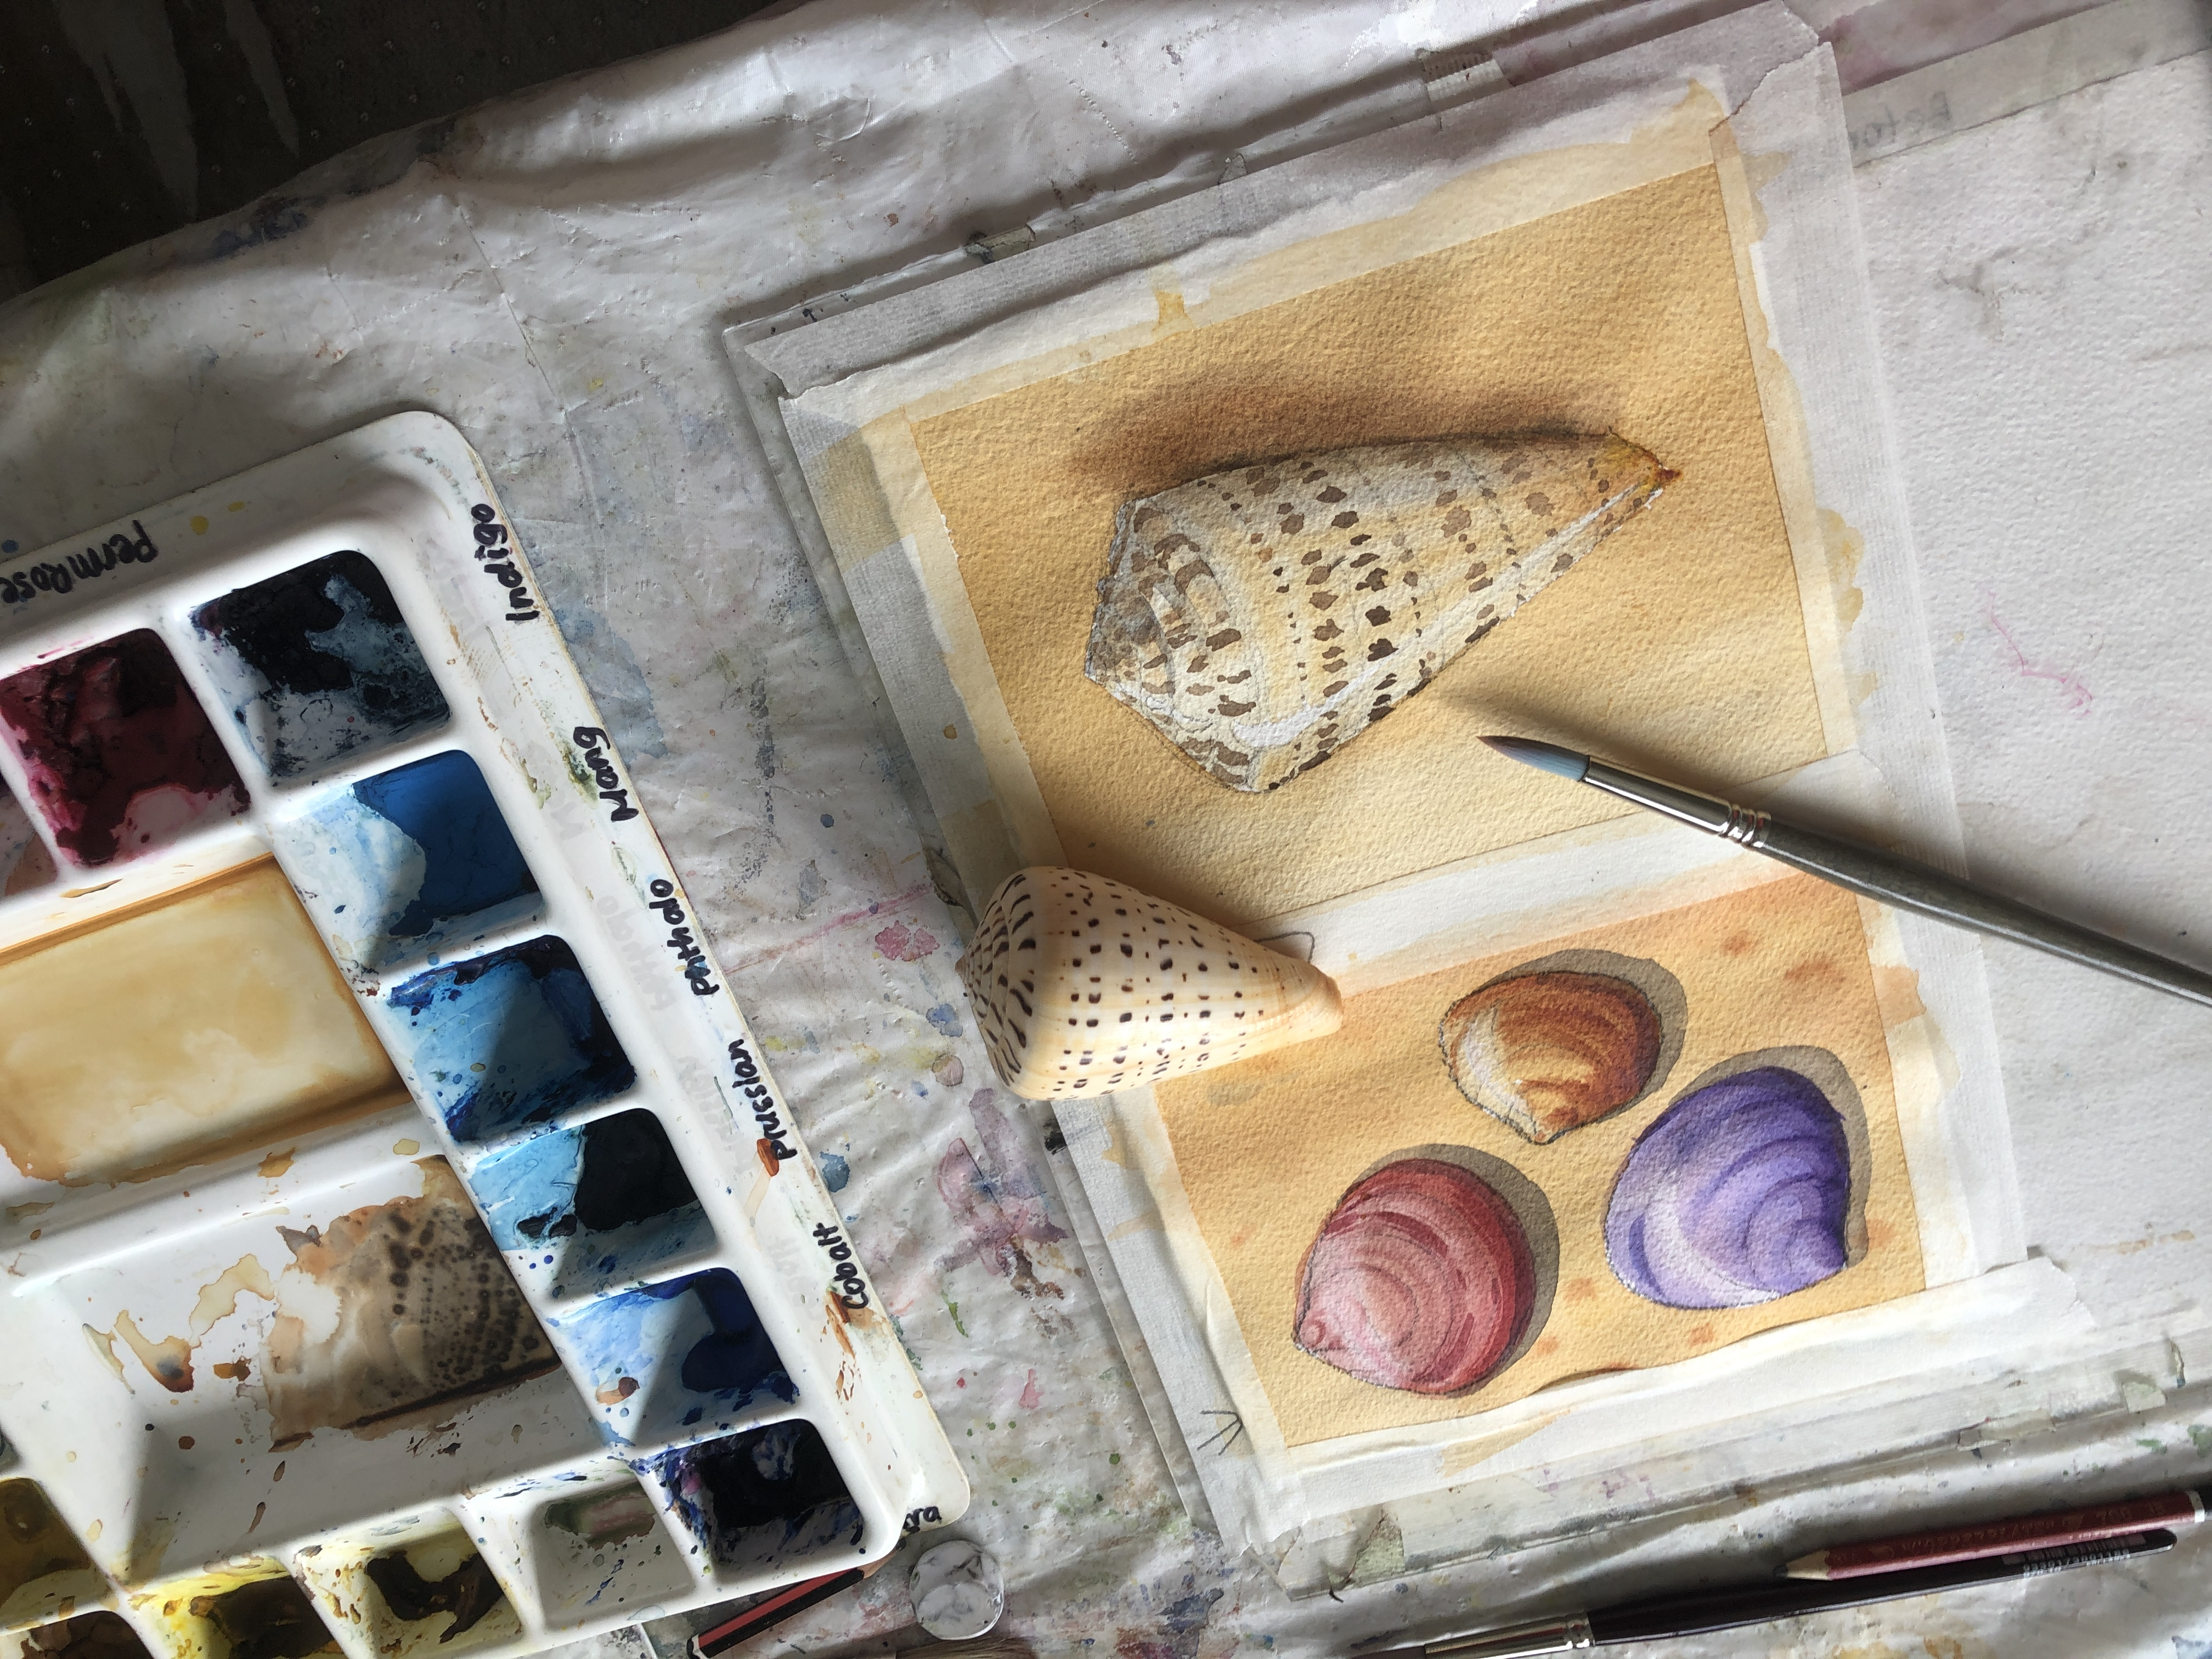 Still life painting - Online Watercolor course and classes teaching absolute beginners how to paint in watercolour with Jenny Gilchrist and Northern Beaches Watercolour